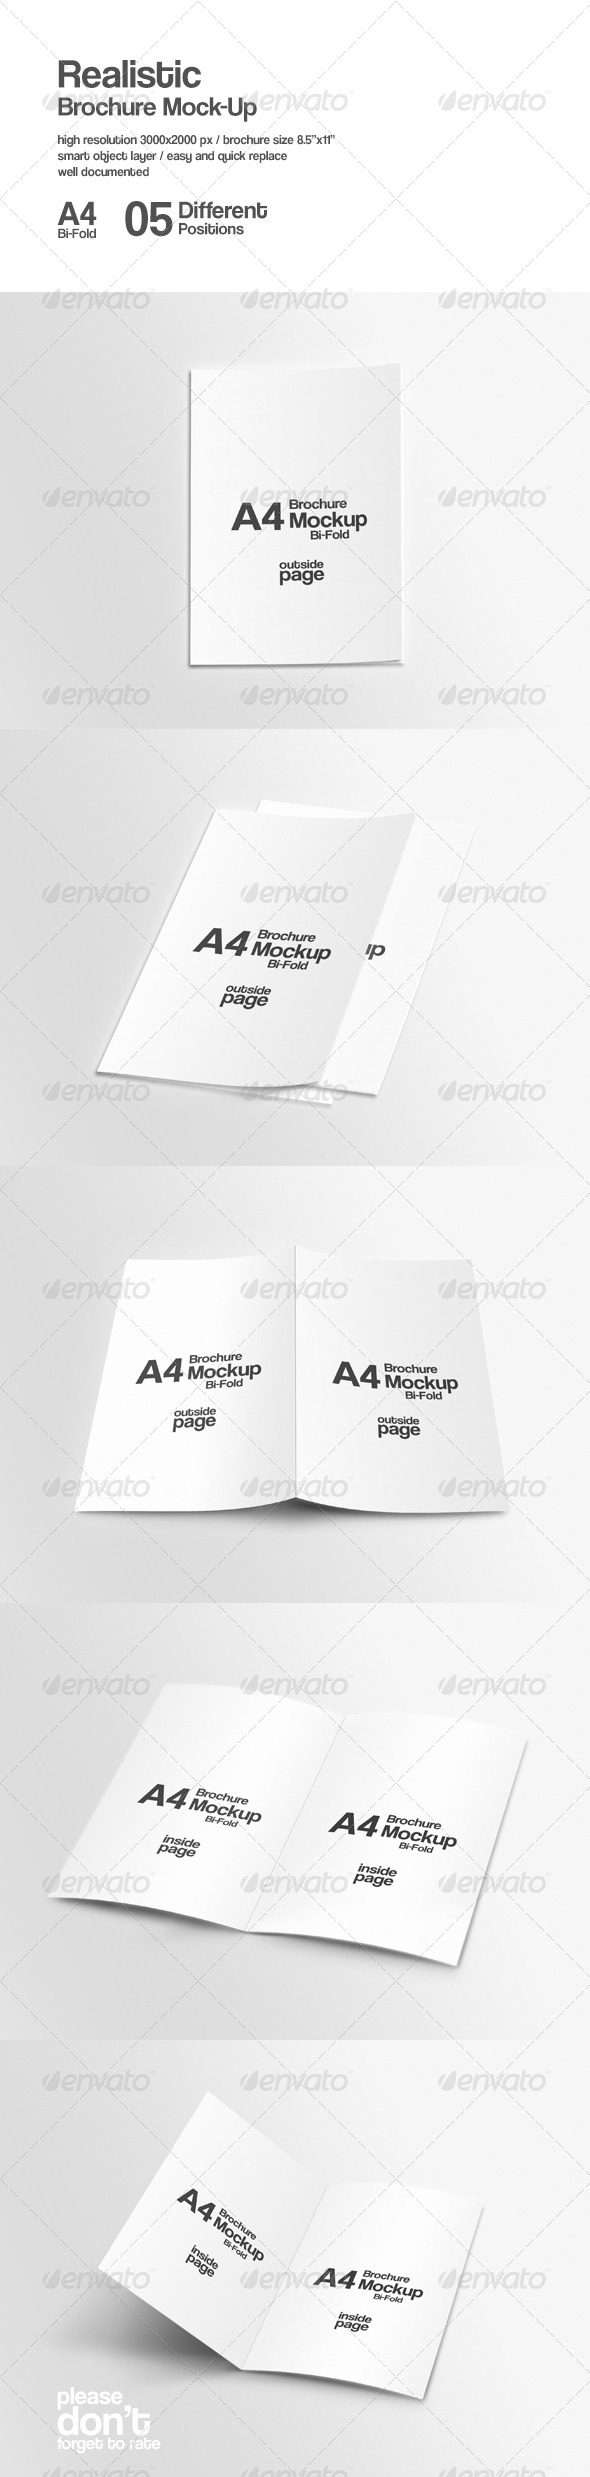 GraphicRiver A4 Bi-Fold Brochure Mock-Ups 8553102